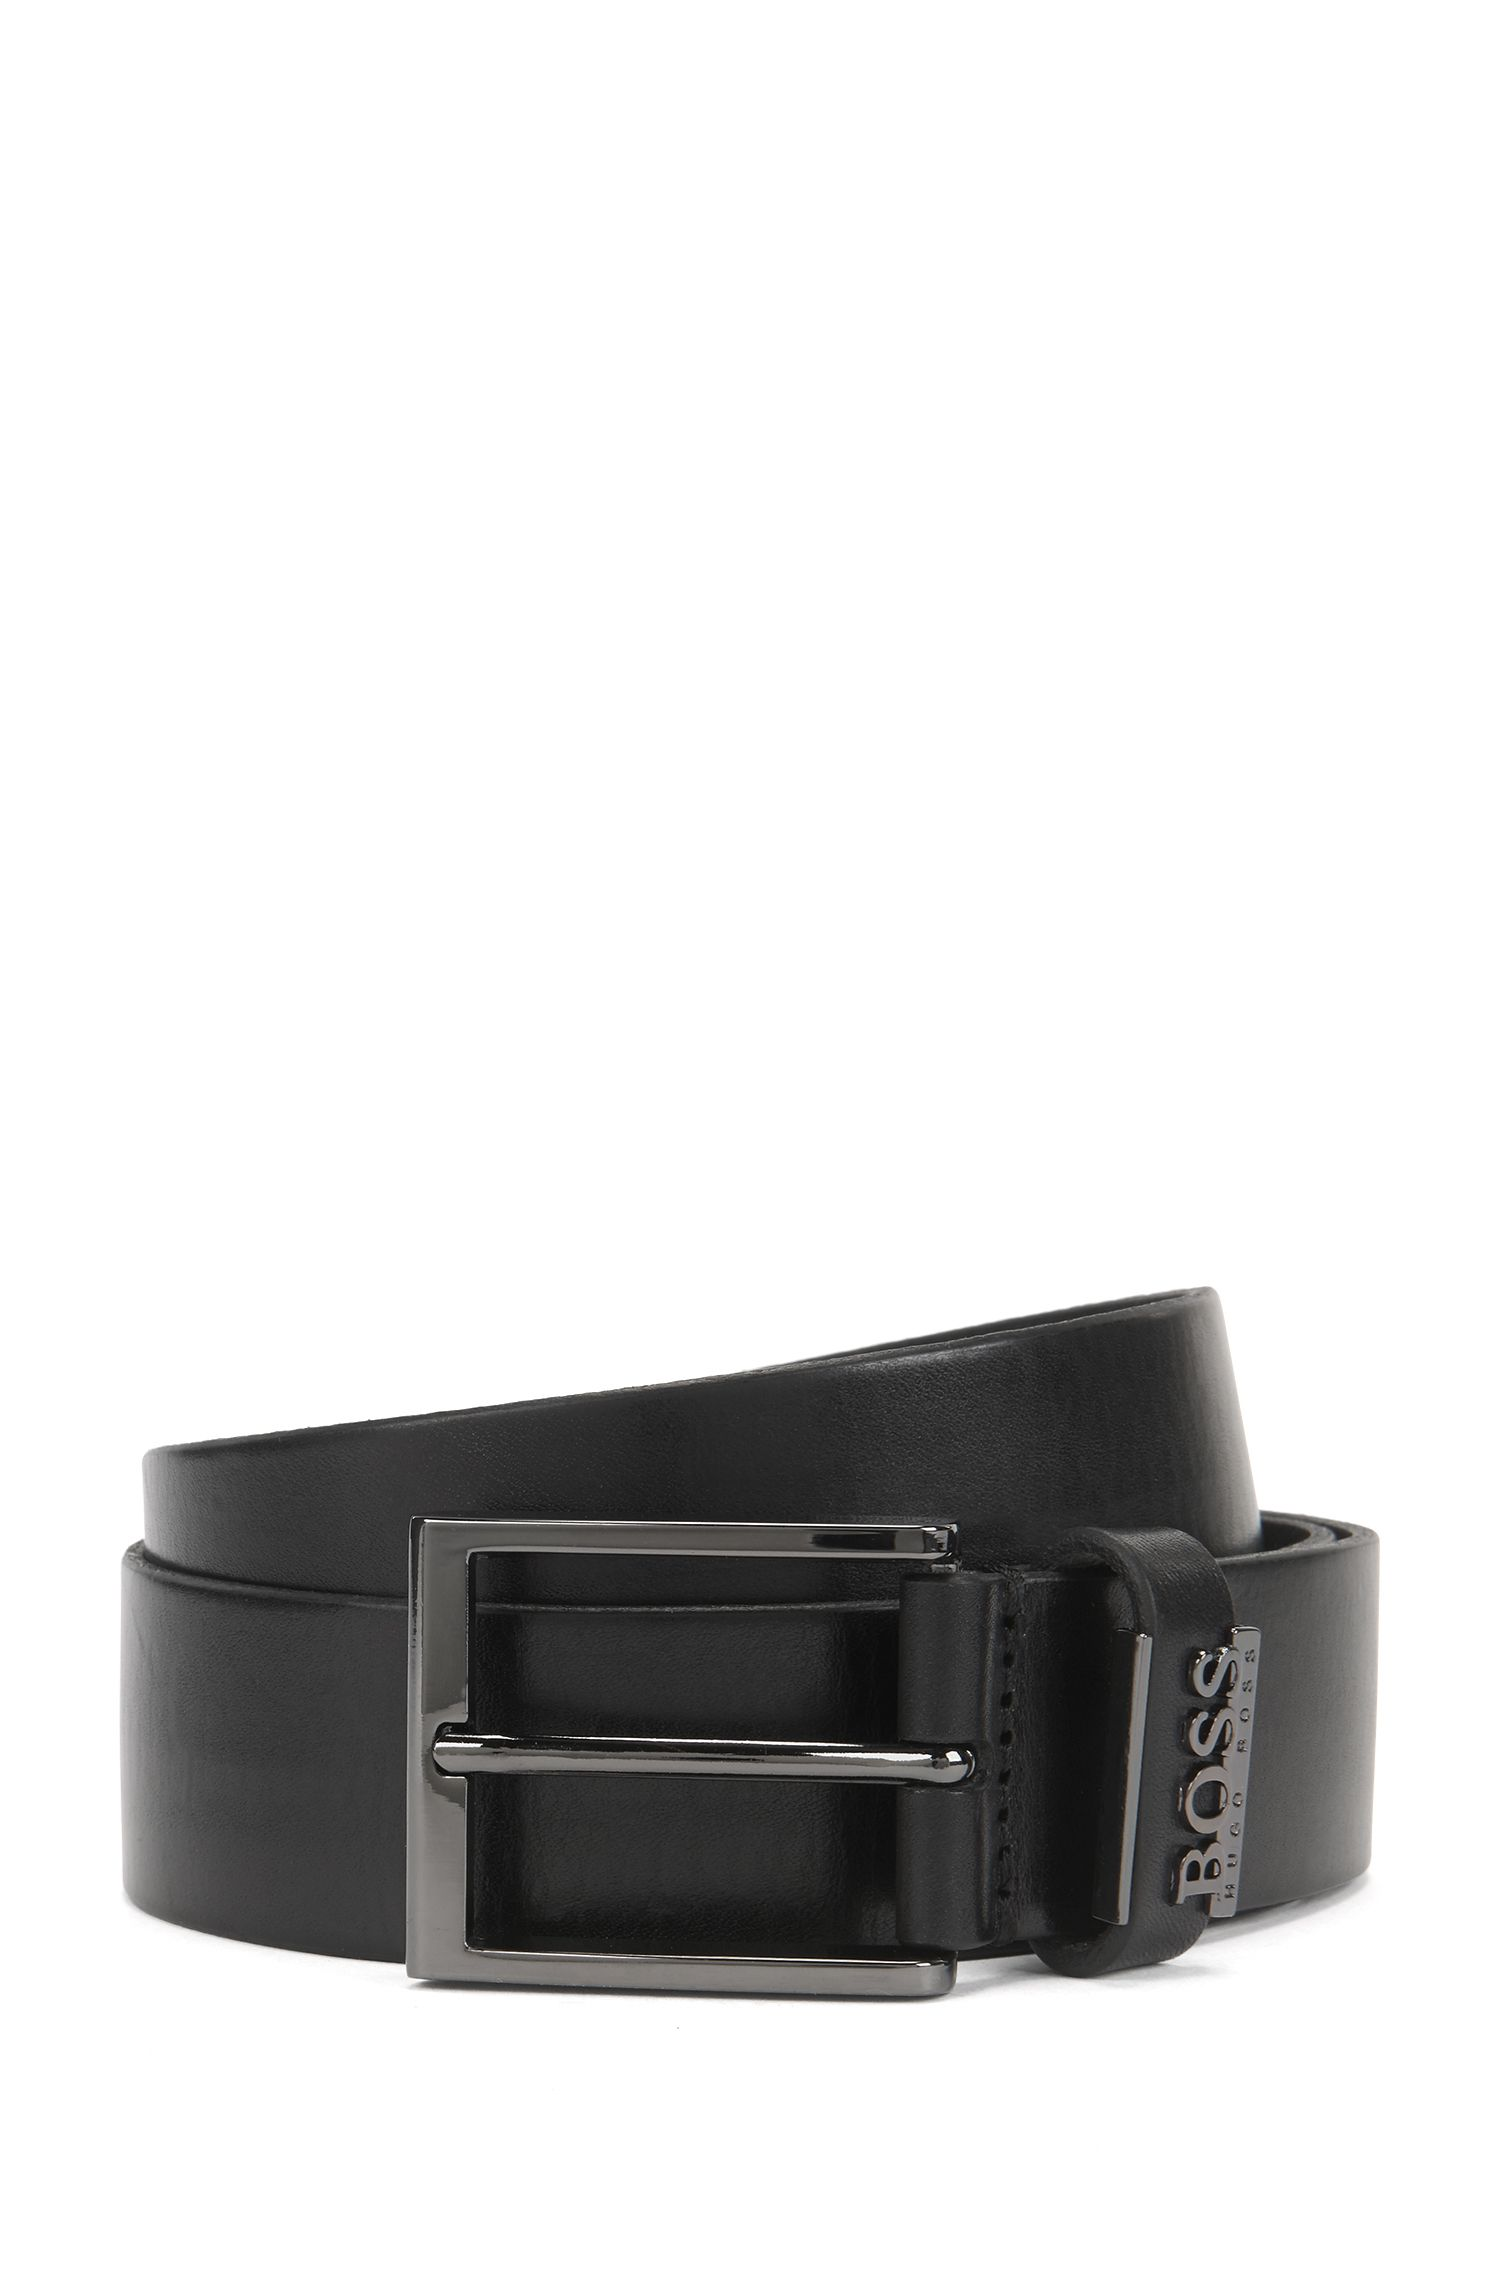 logo buckle belt - Black N°21